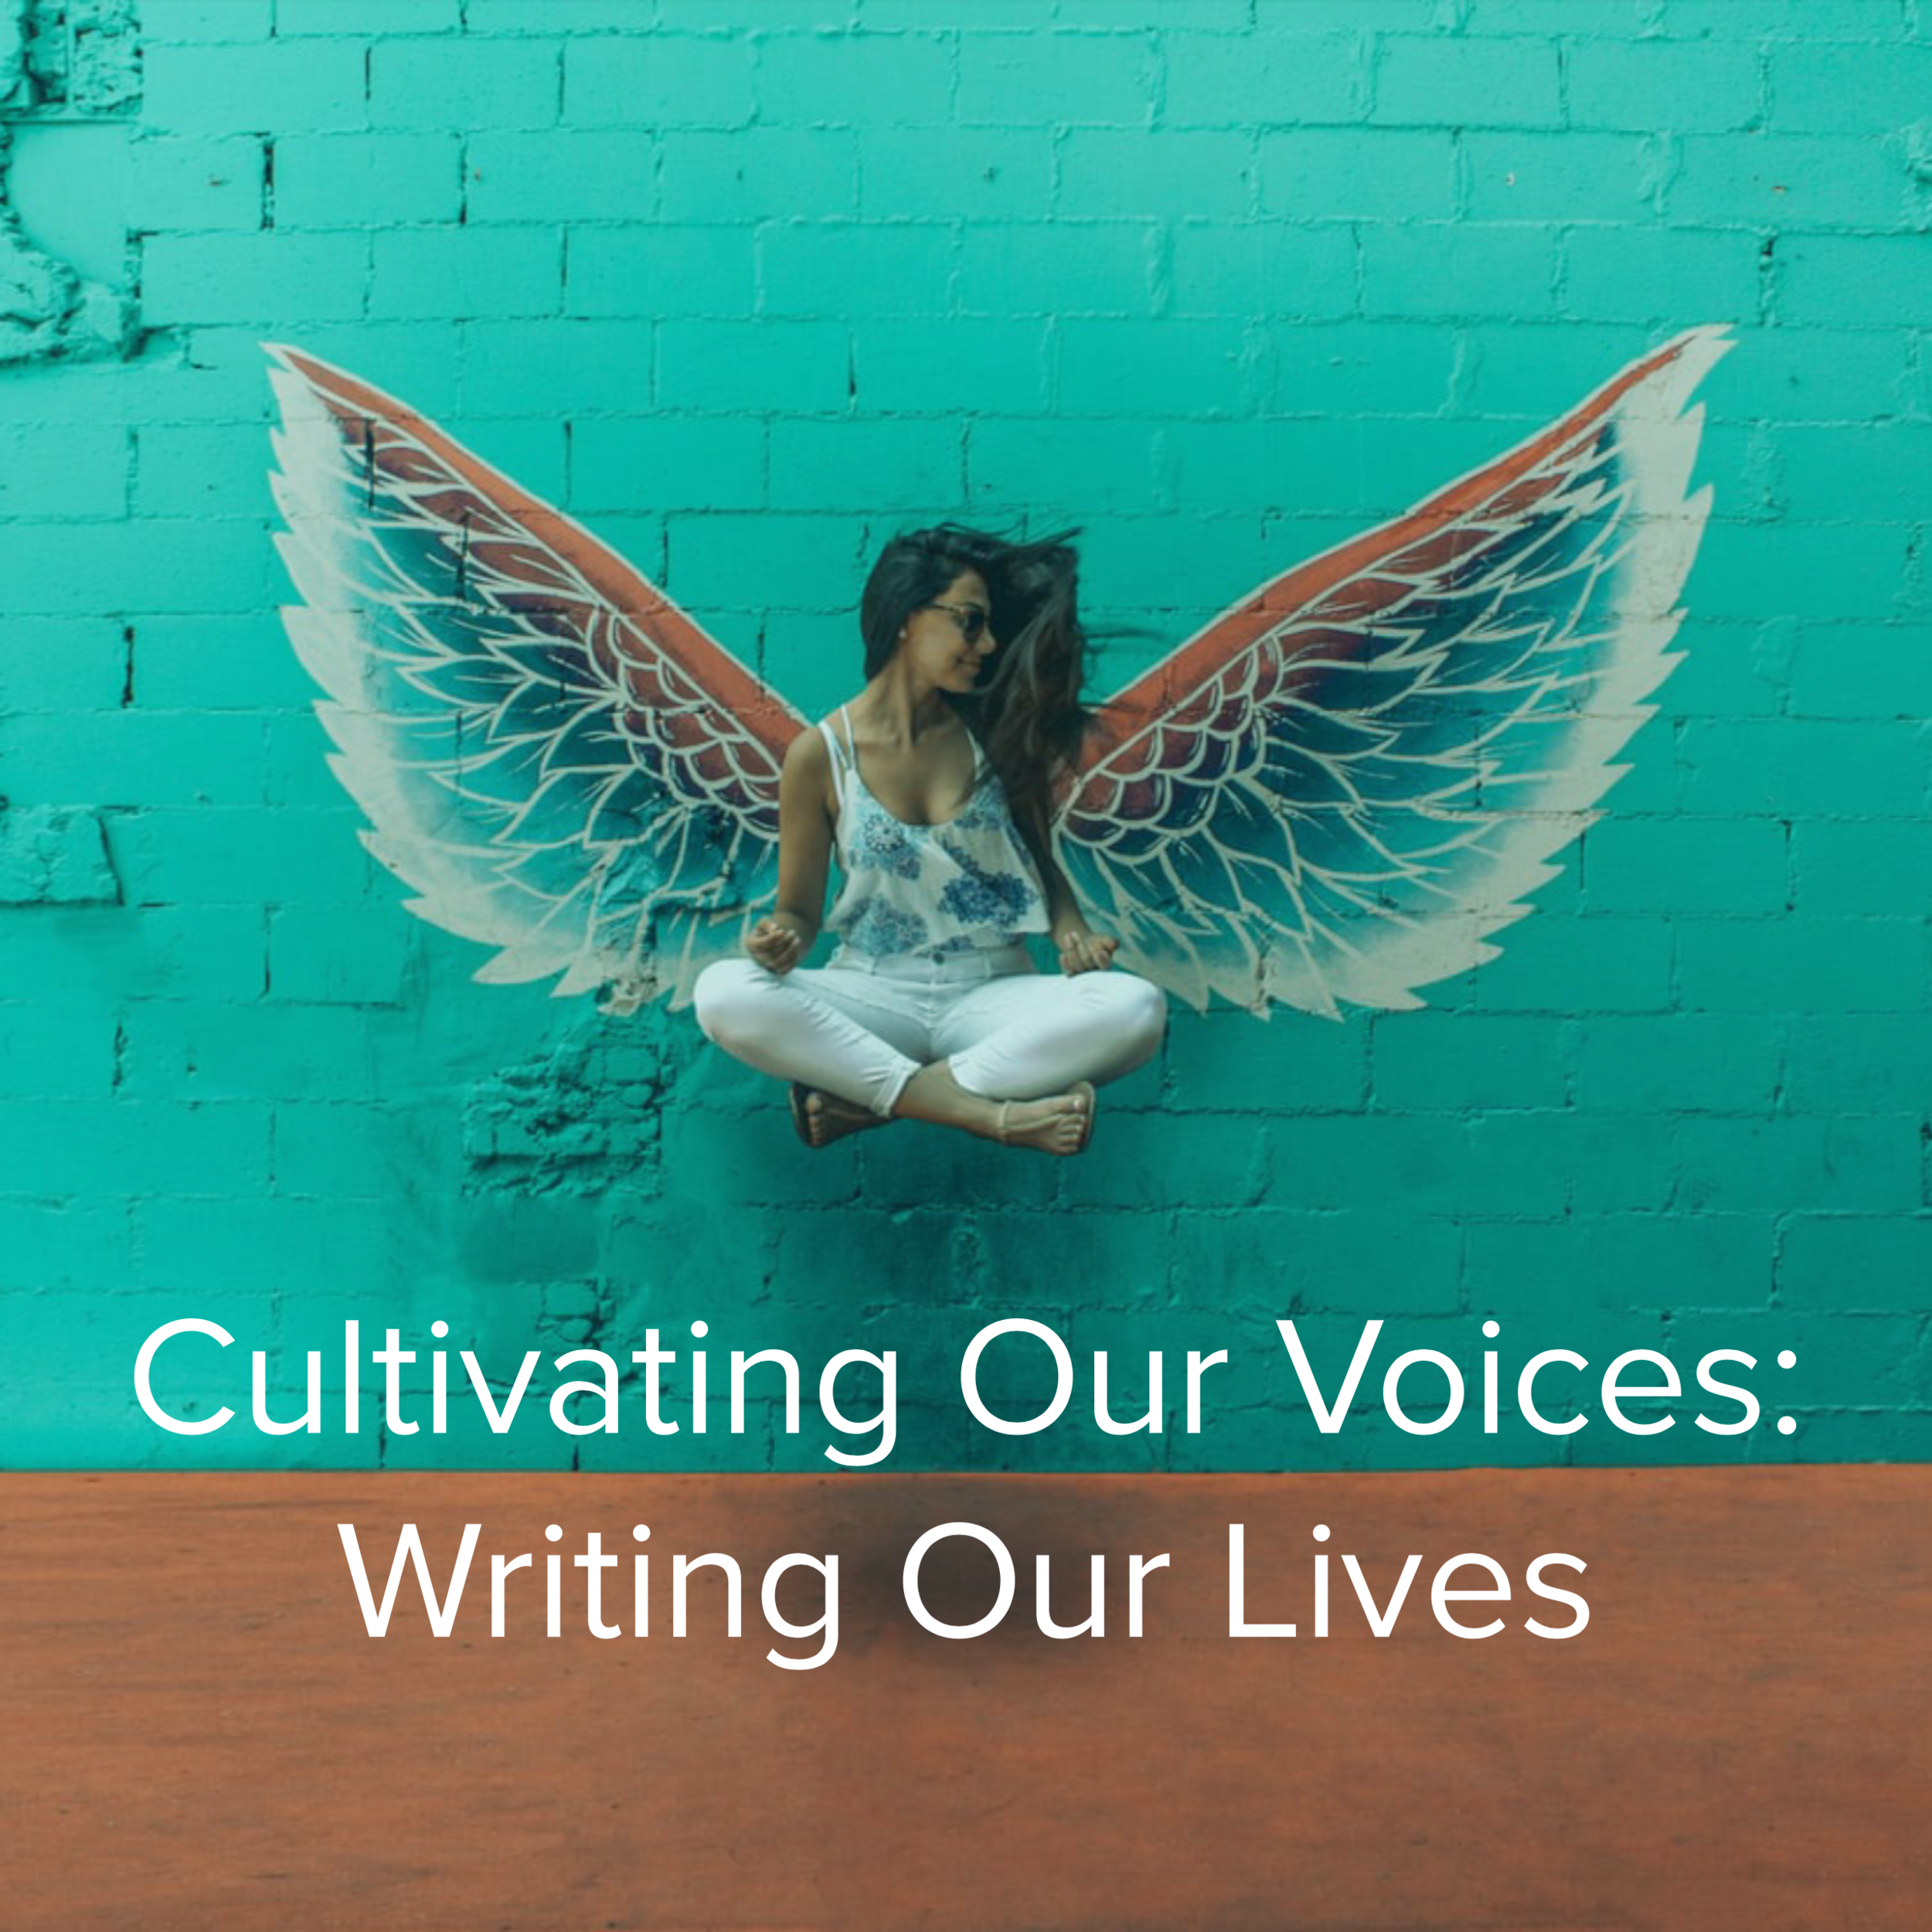 Cultivating Our Voices: Writing Our Lives is a self-paced online writing class created by Liz Burke-Cravens to help you develop a greater understanding of your writer voice and insights about yourself and experience. The numerous self-reflective and creative prompts will inspire a robust new body of writing in any genre you choose to work with.